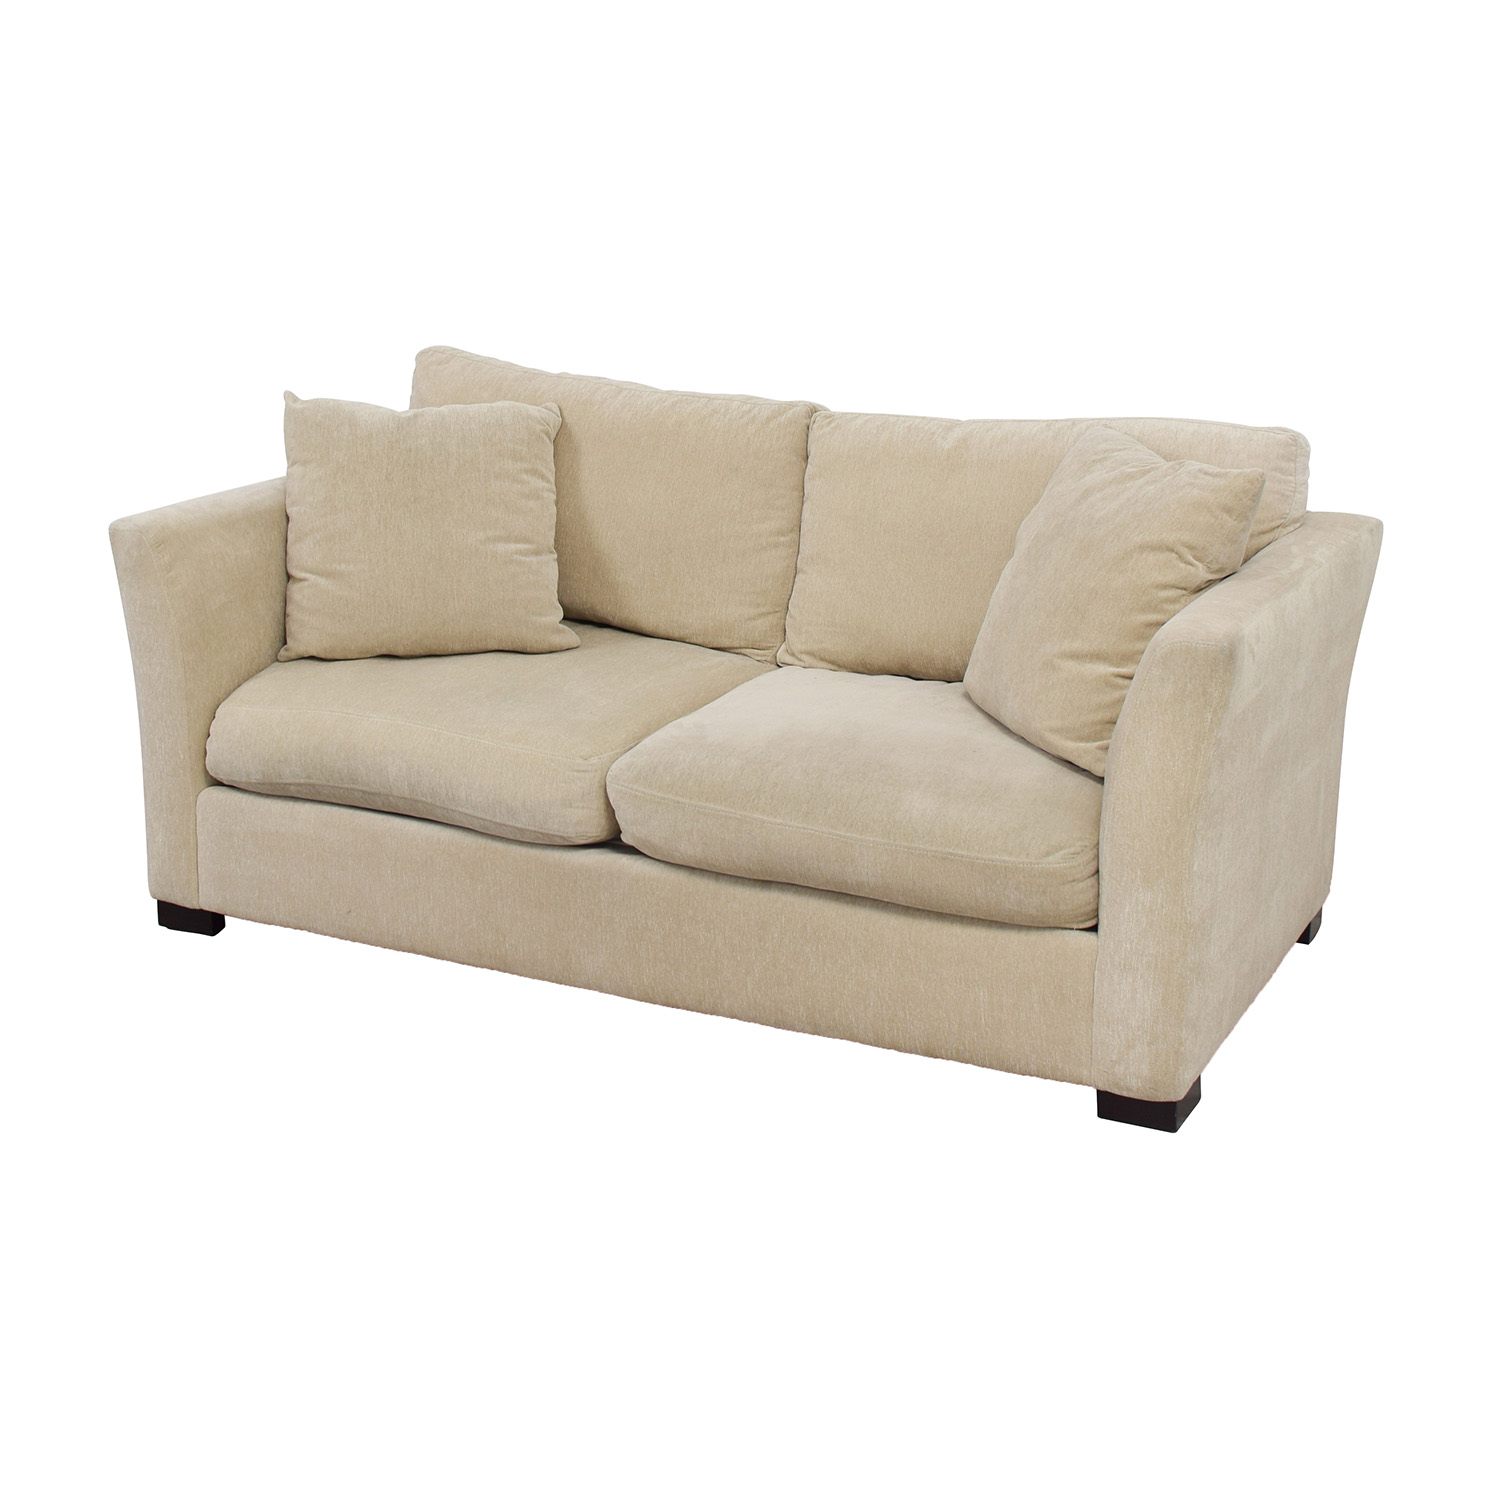 90 Off Macy S Macy S White Two Cushion Fabric Couch Sofas